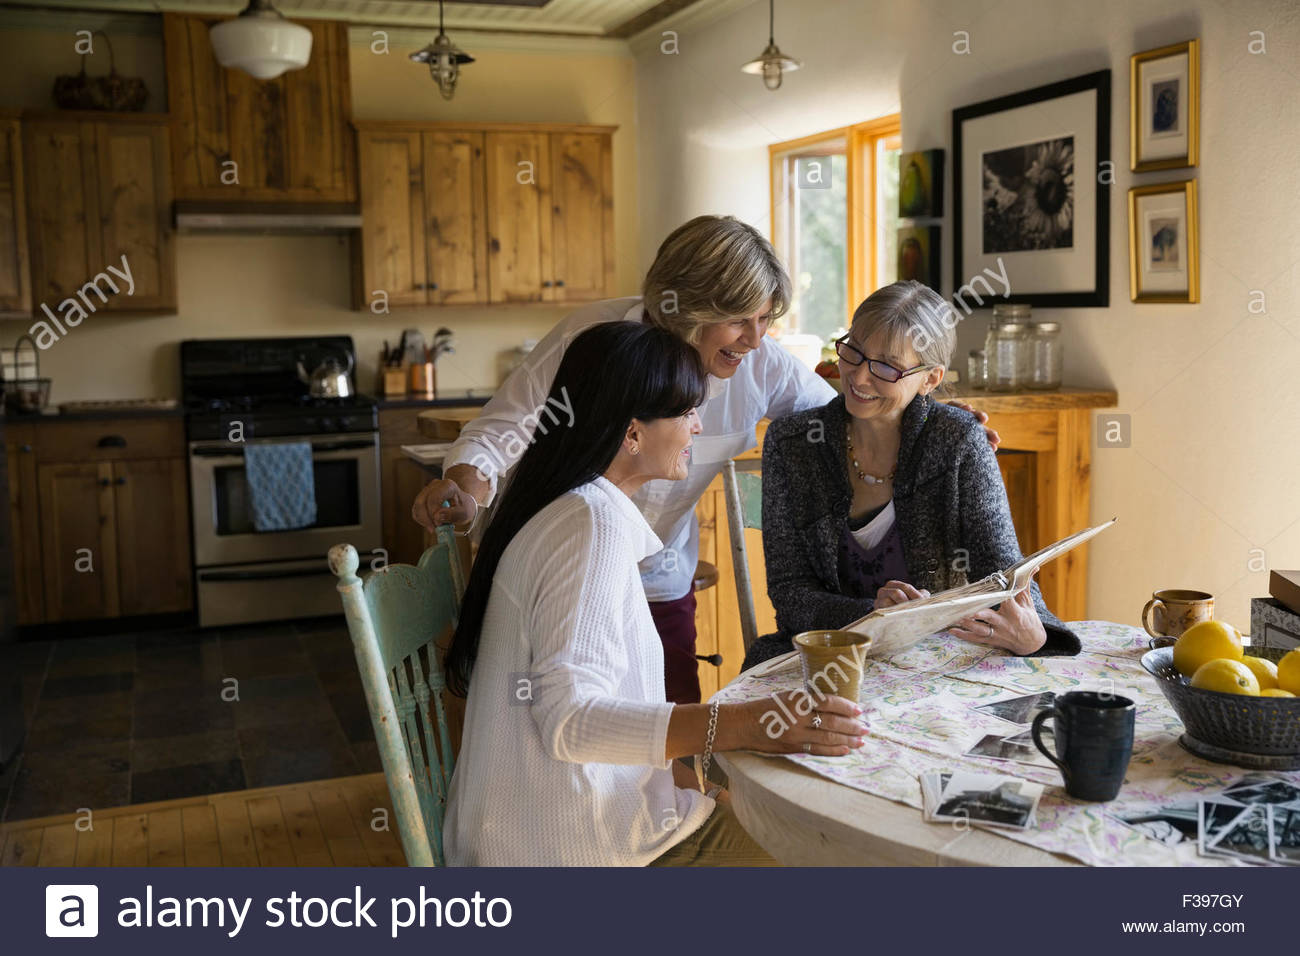 Women looking at photograph album at dining table - Stock Image